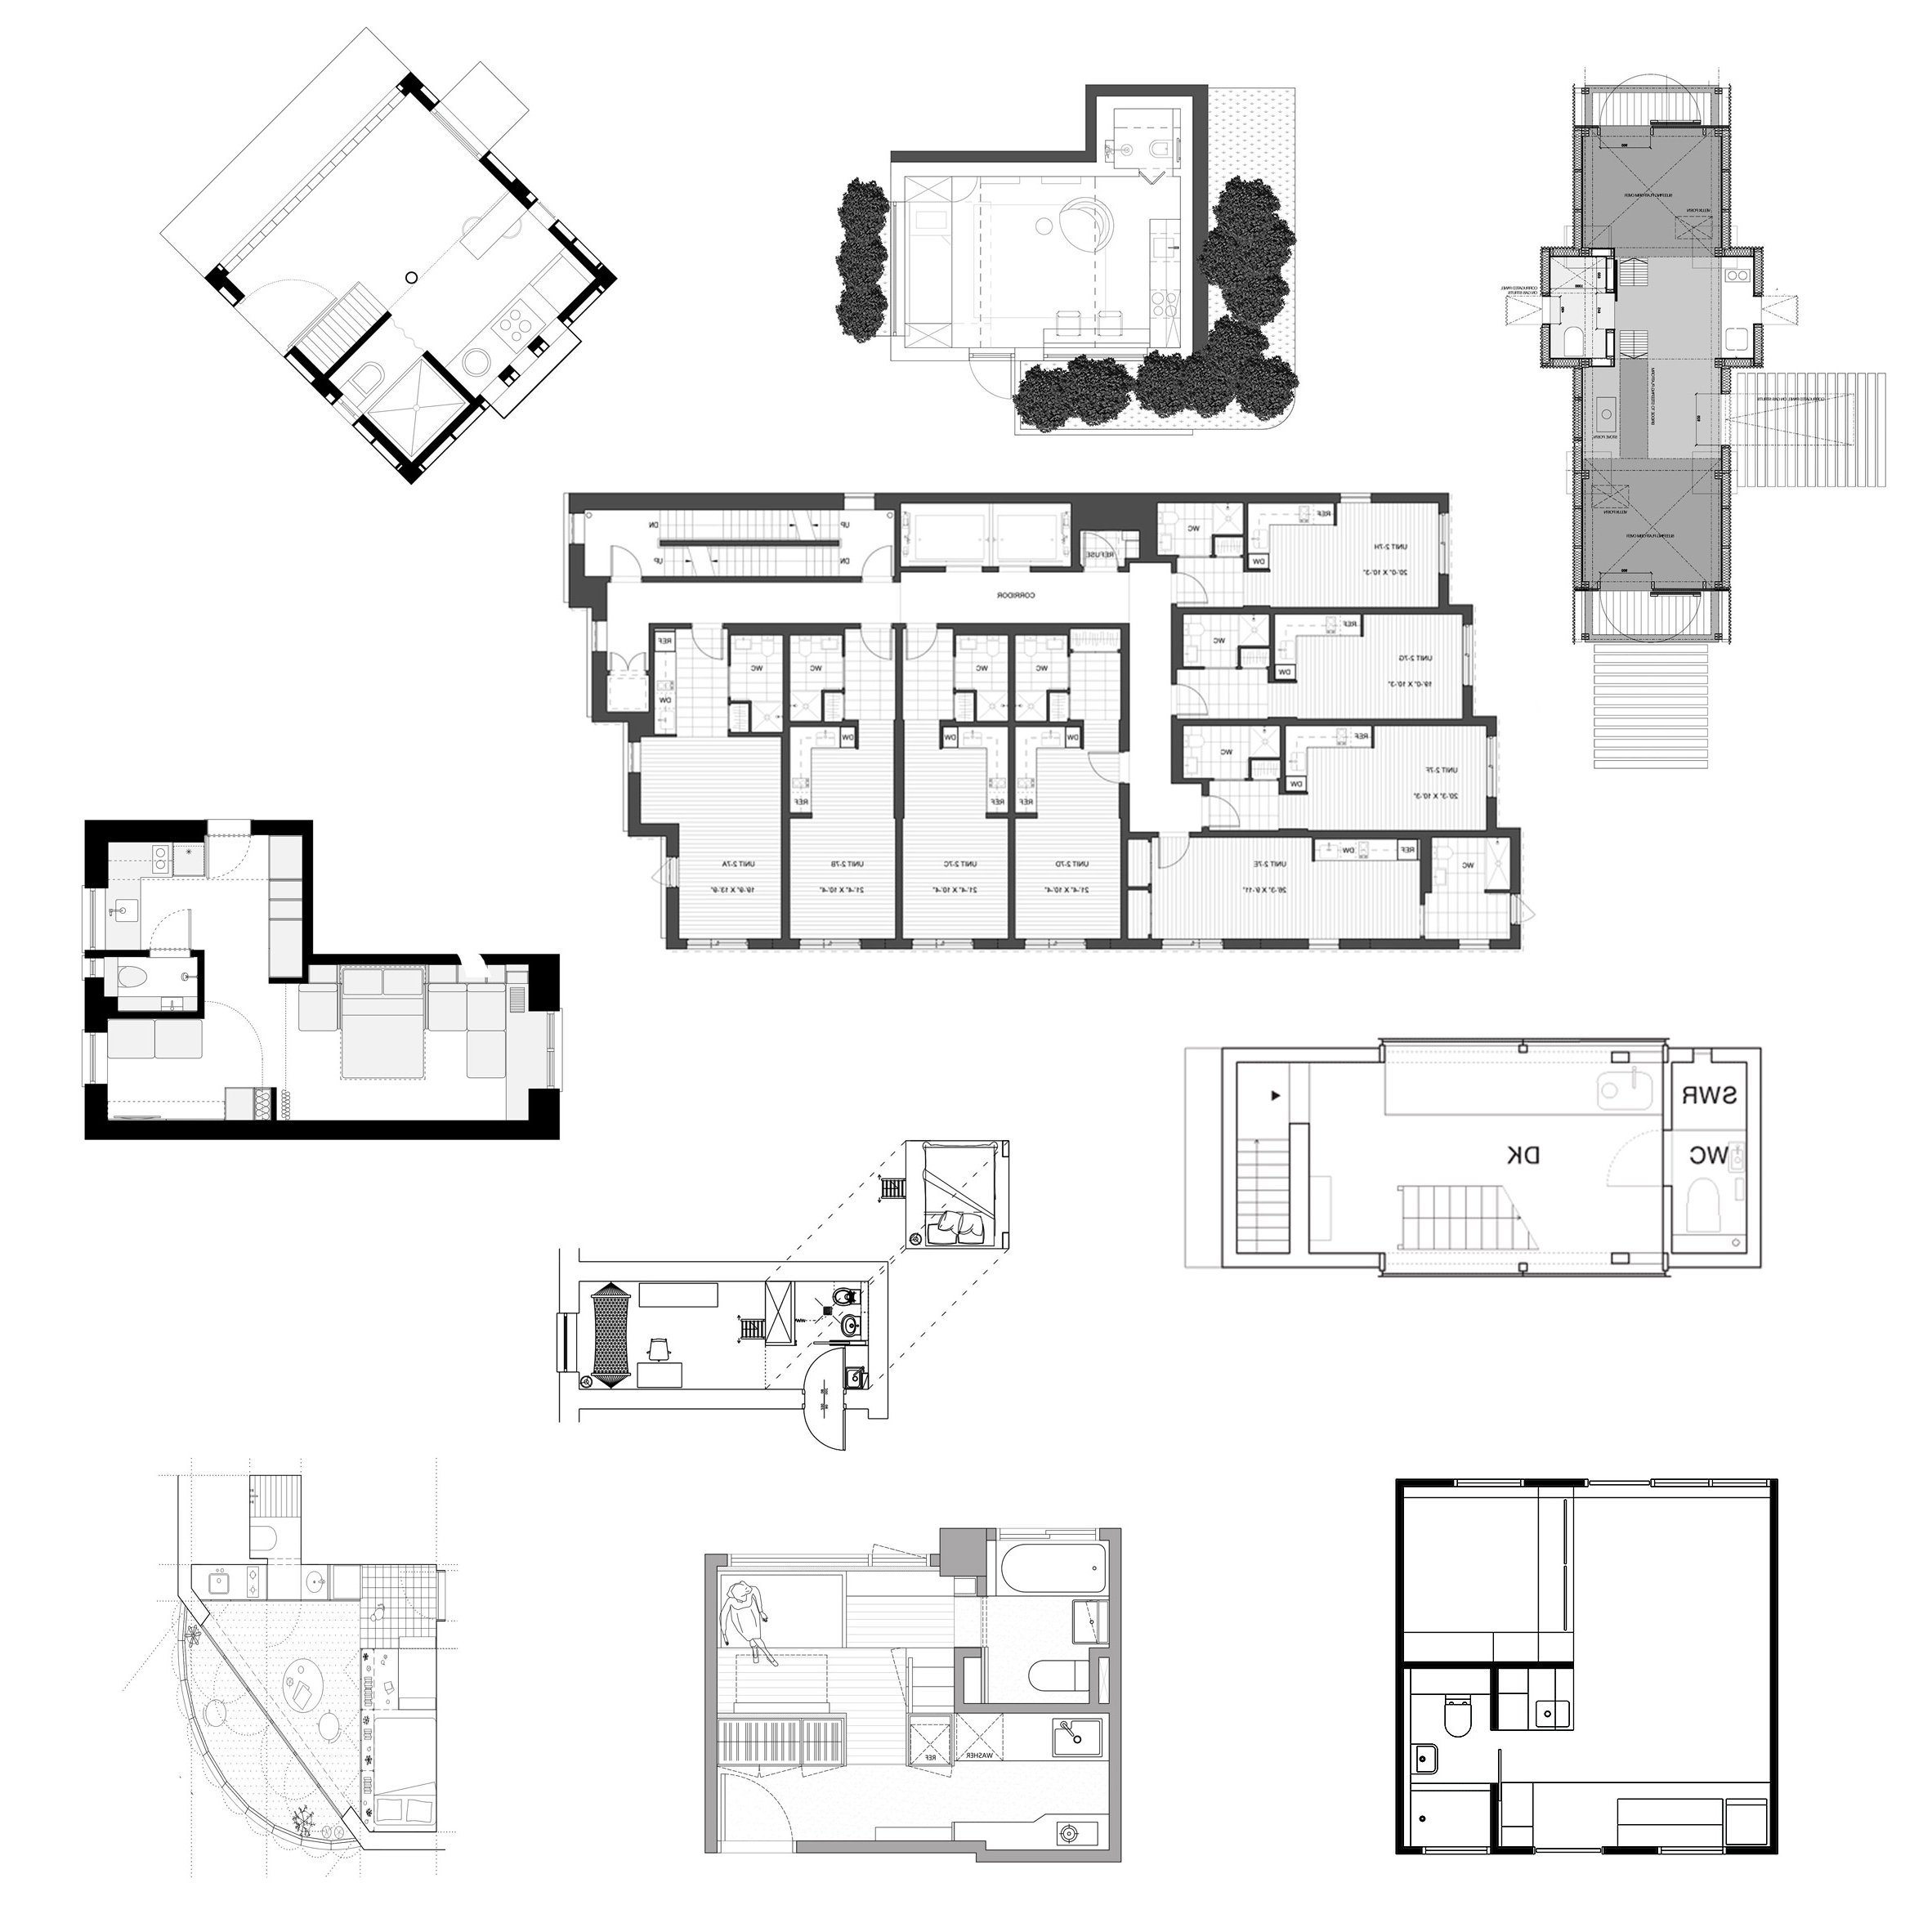 10 Micro Home Floor Plans Designed To Save Space 10+ Micro Apartment Design Plans Inspirations